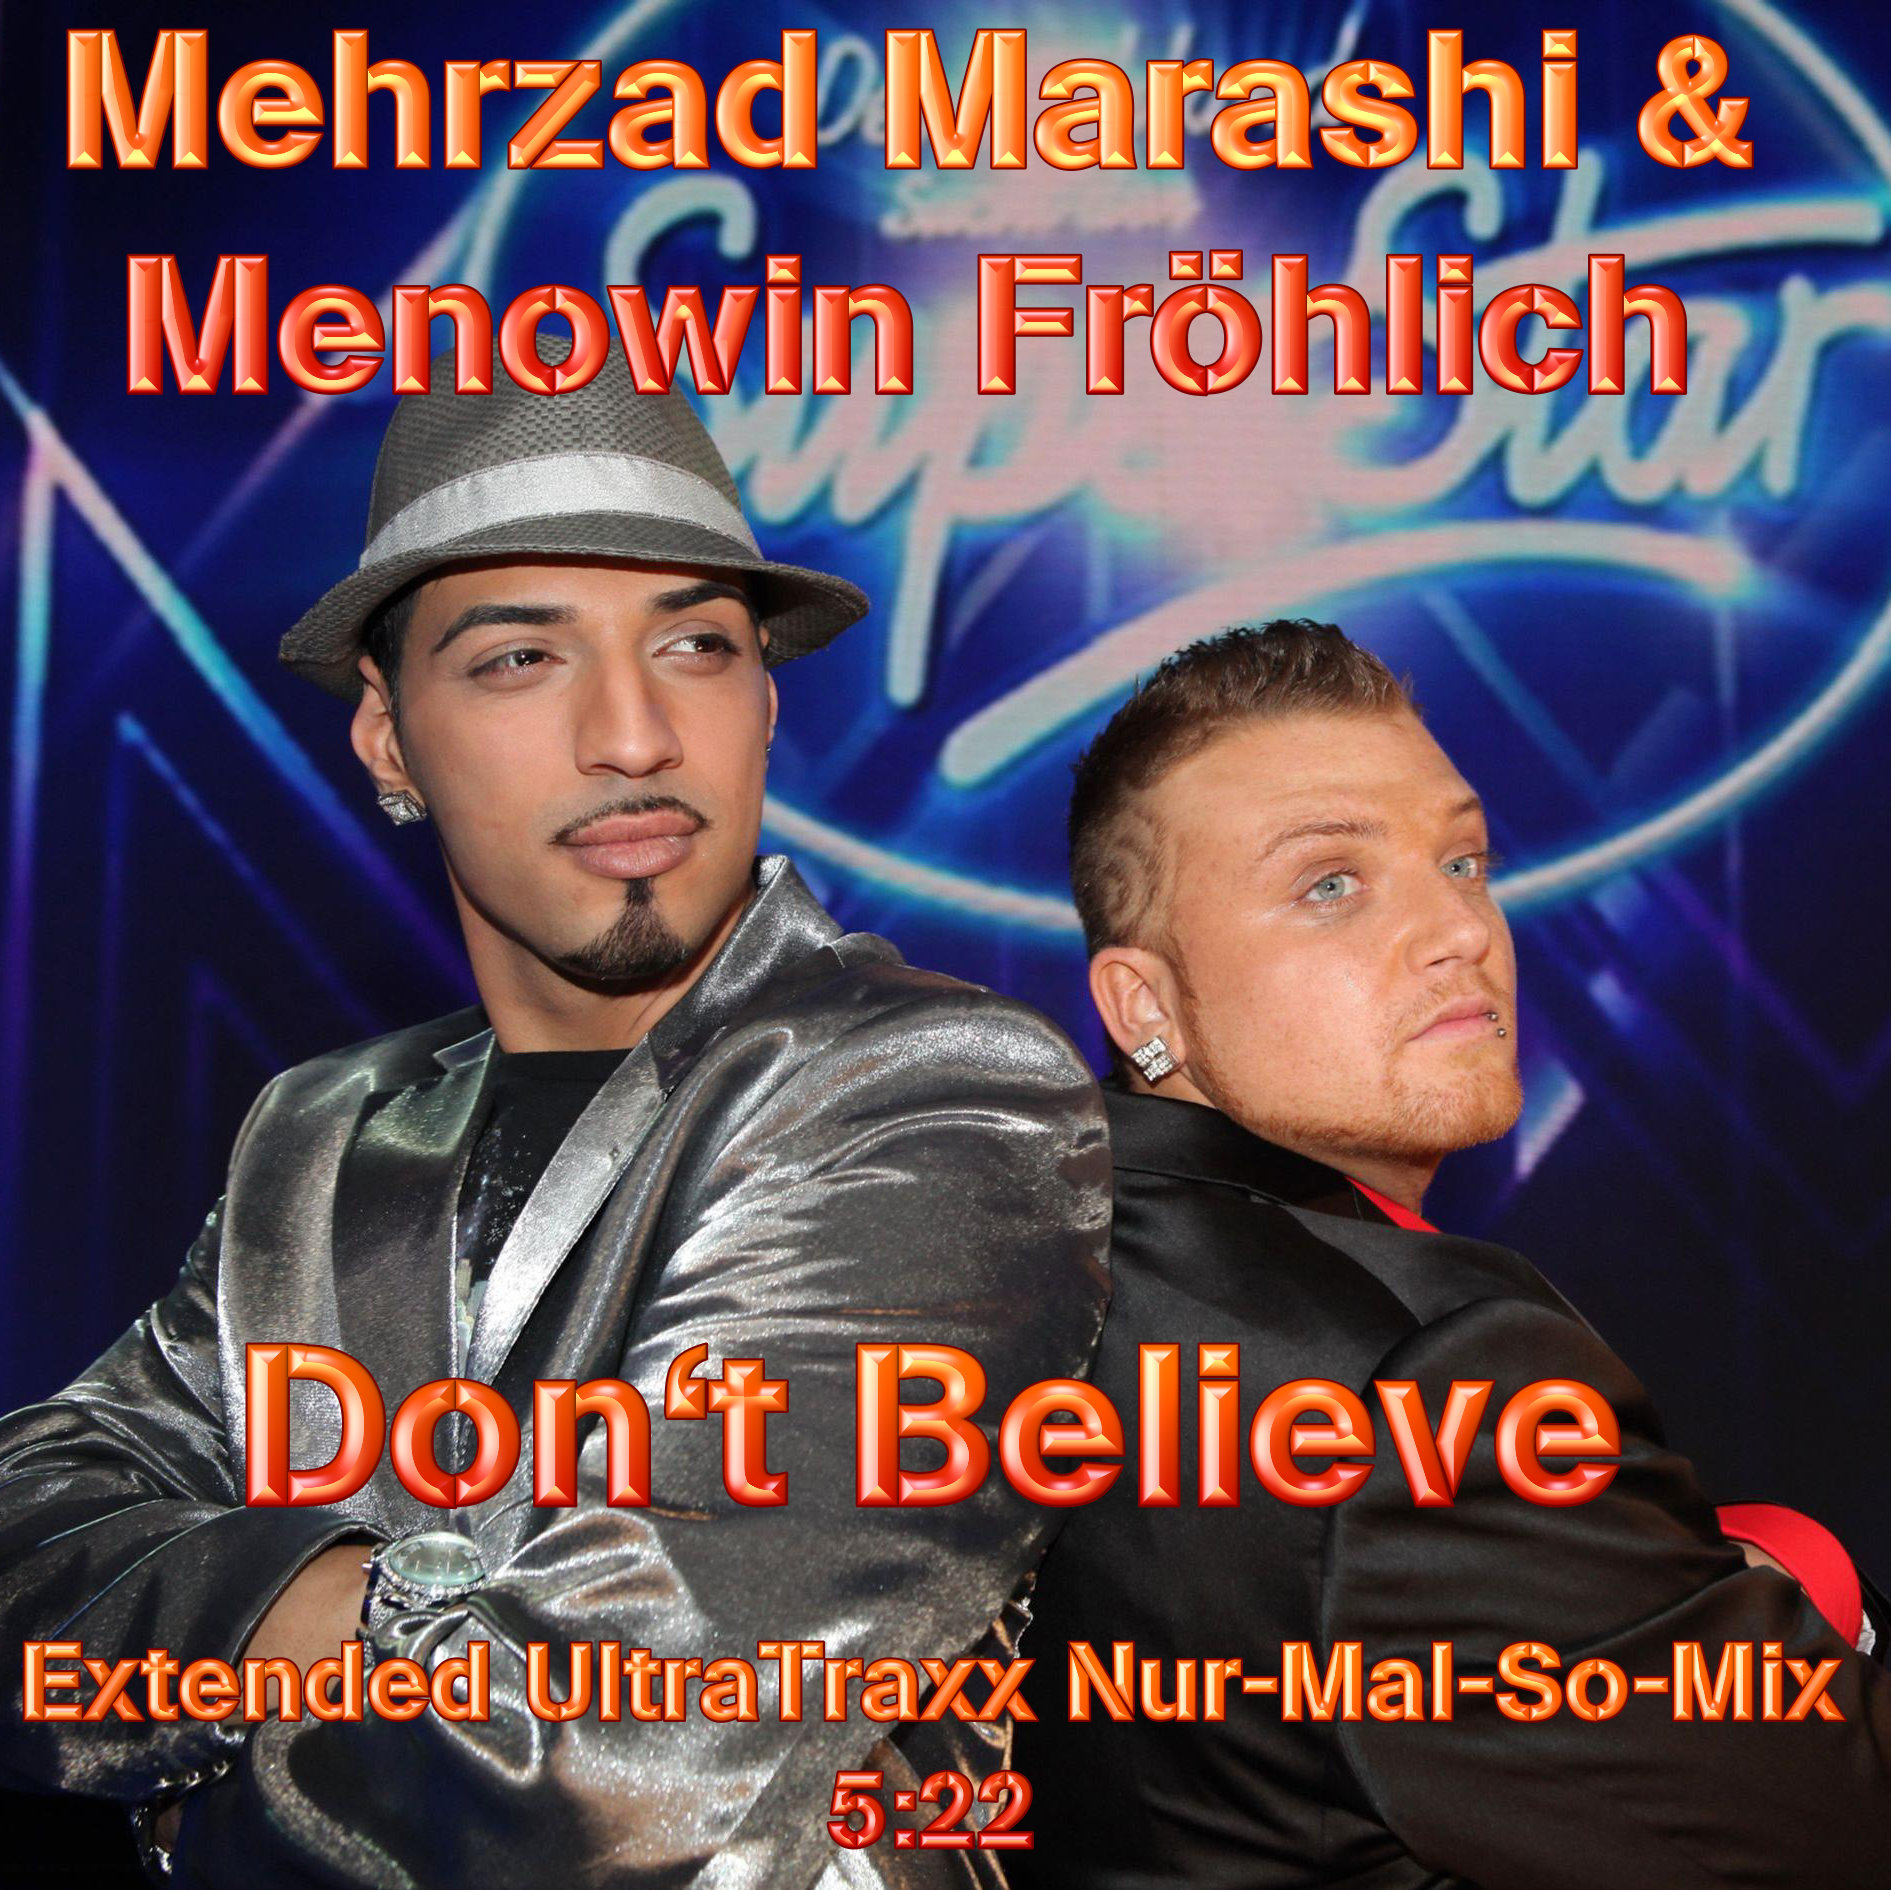 Cover Album of Mehrzad Marashi & Menowin Frцhlich - Don't Believe